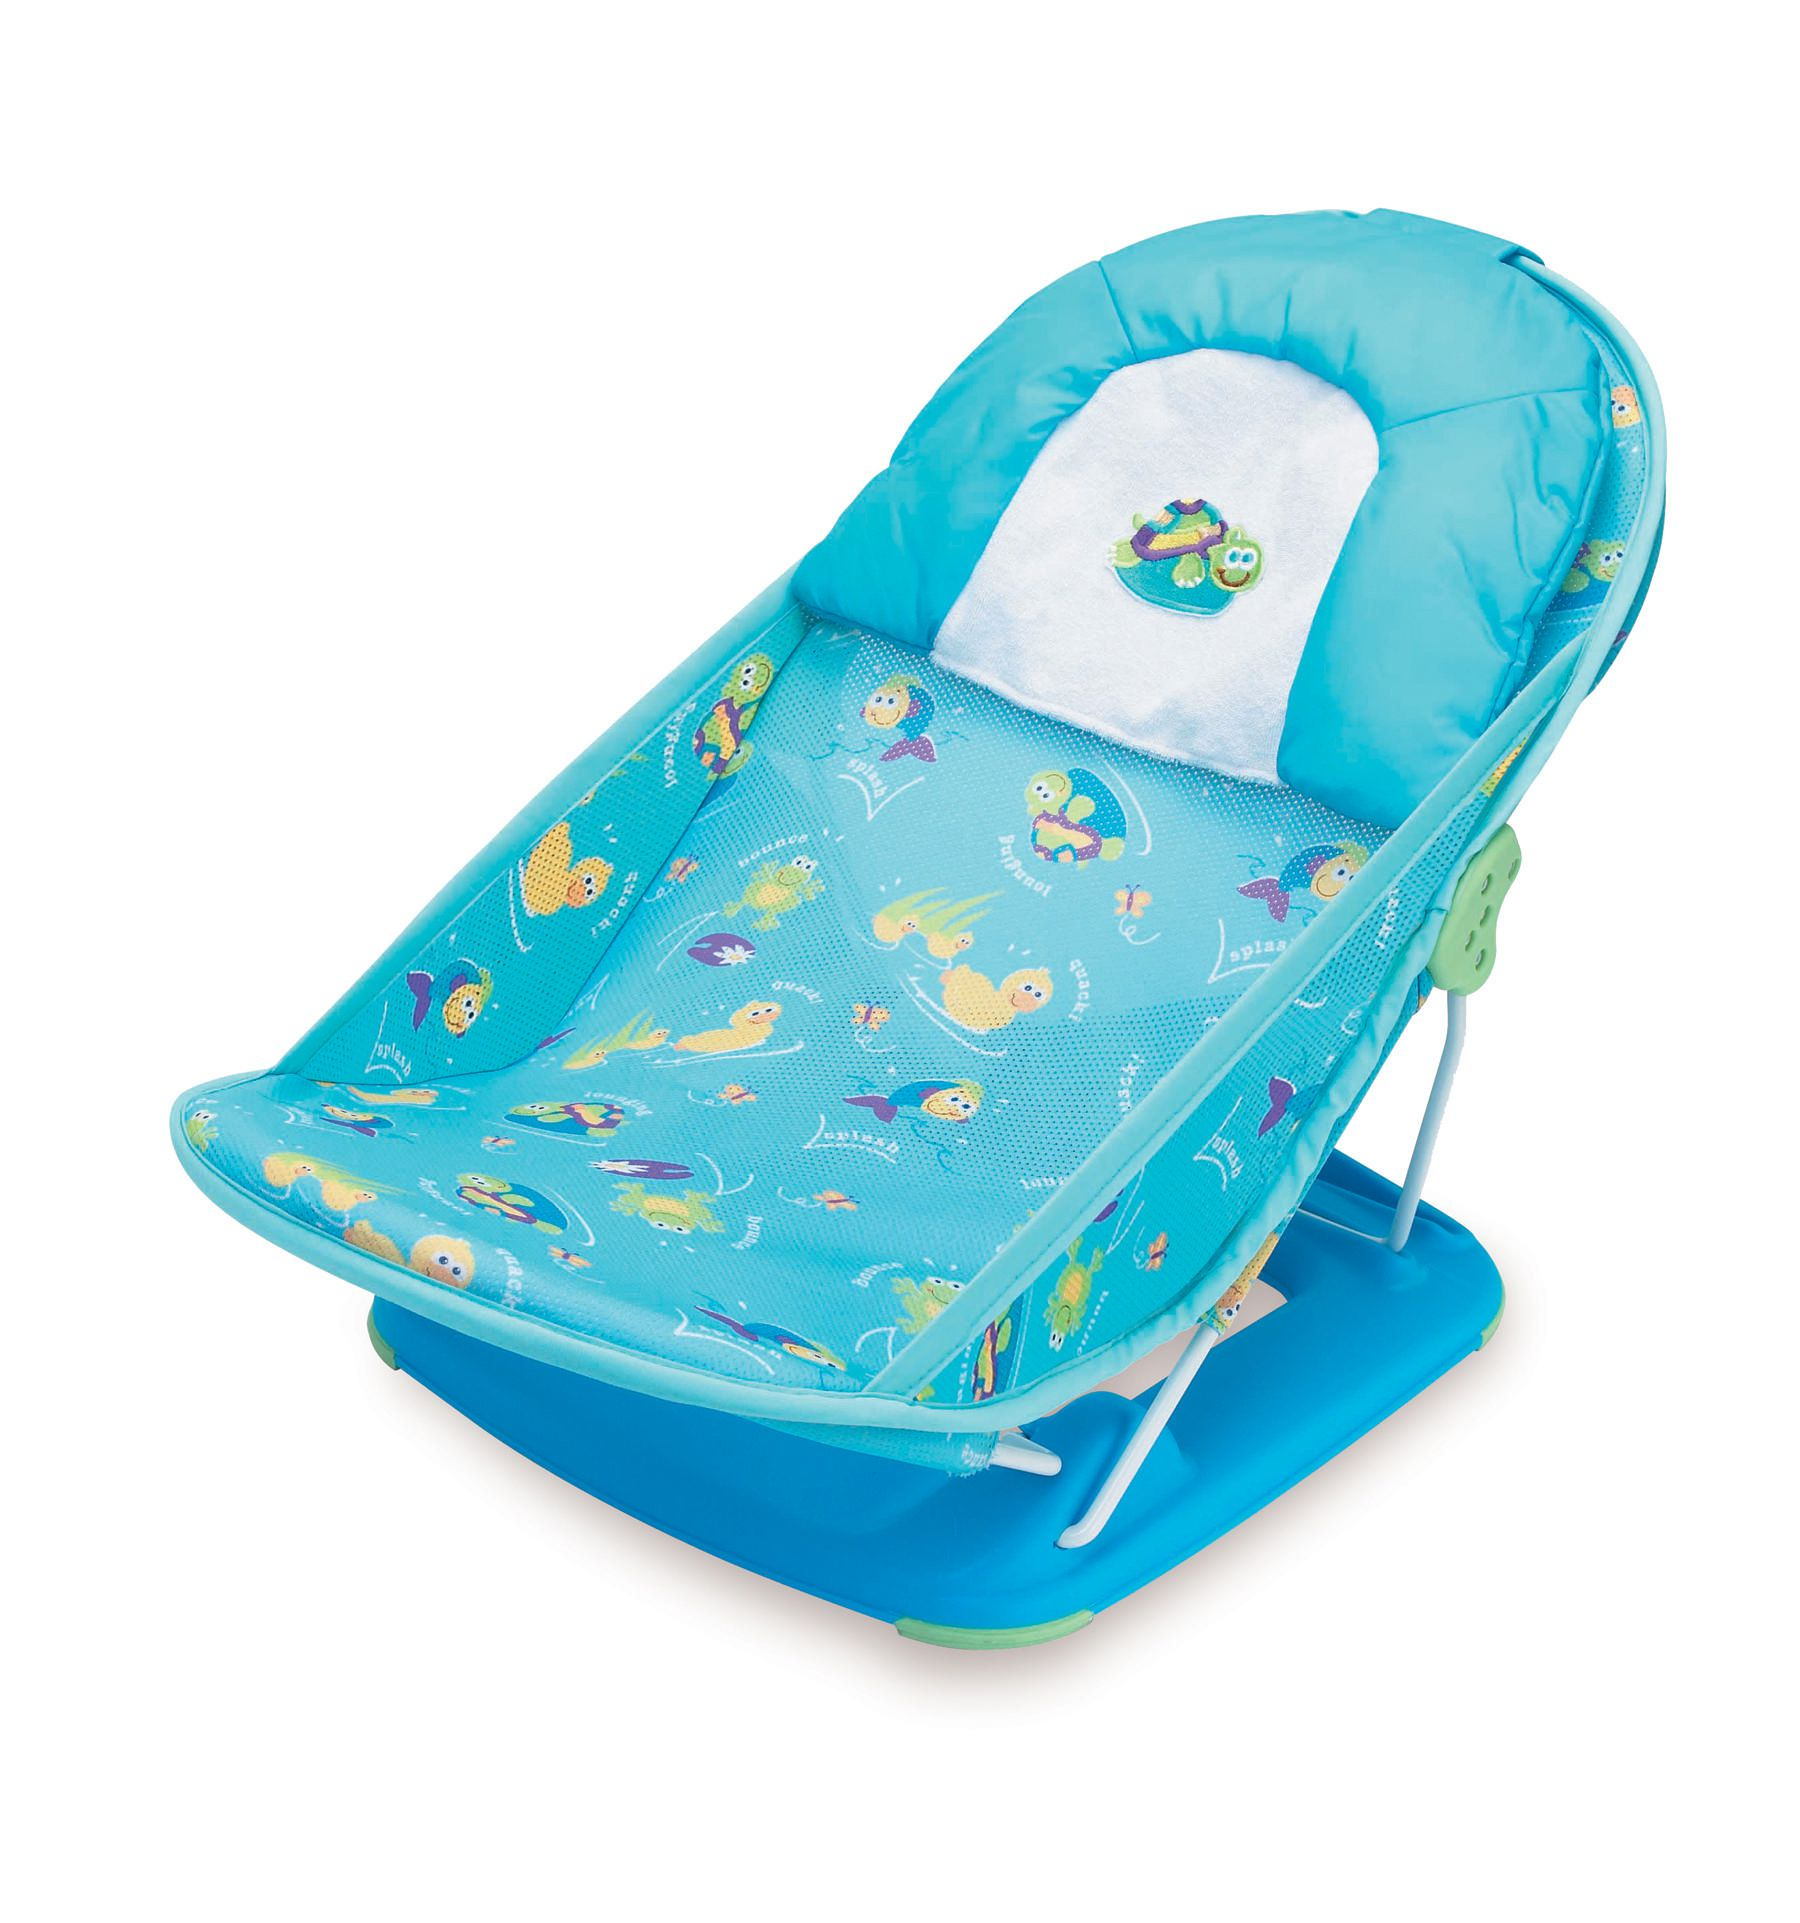 Baby bath chairs for the tub - Summer Infant Deluxe Bather Walmart Ca